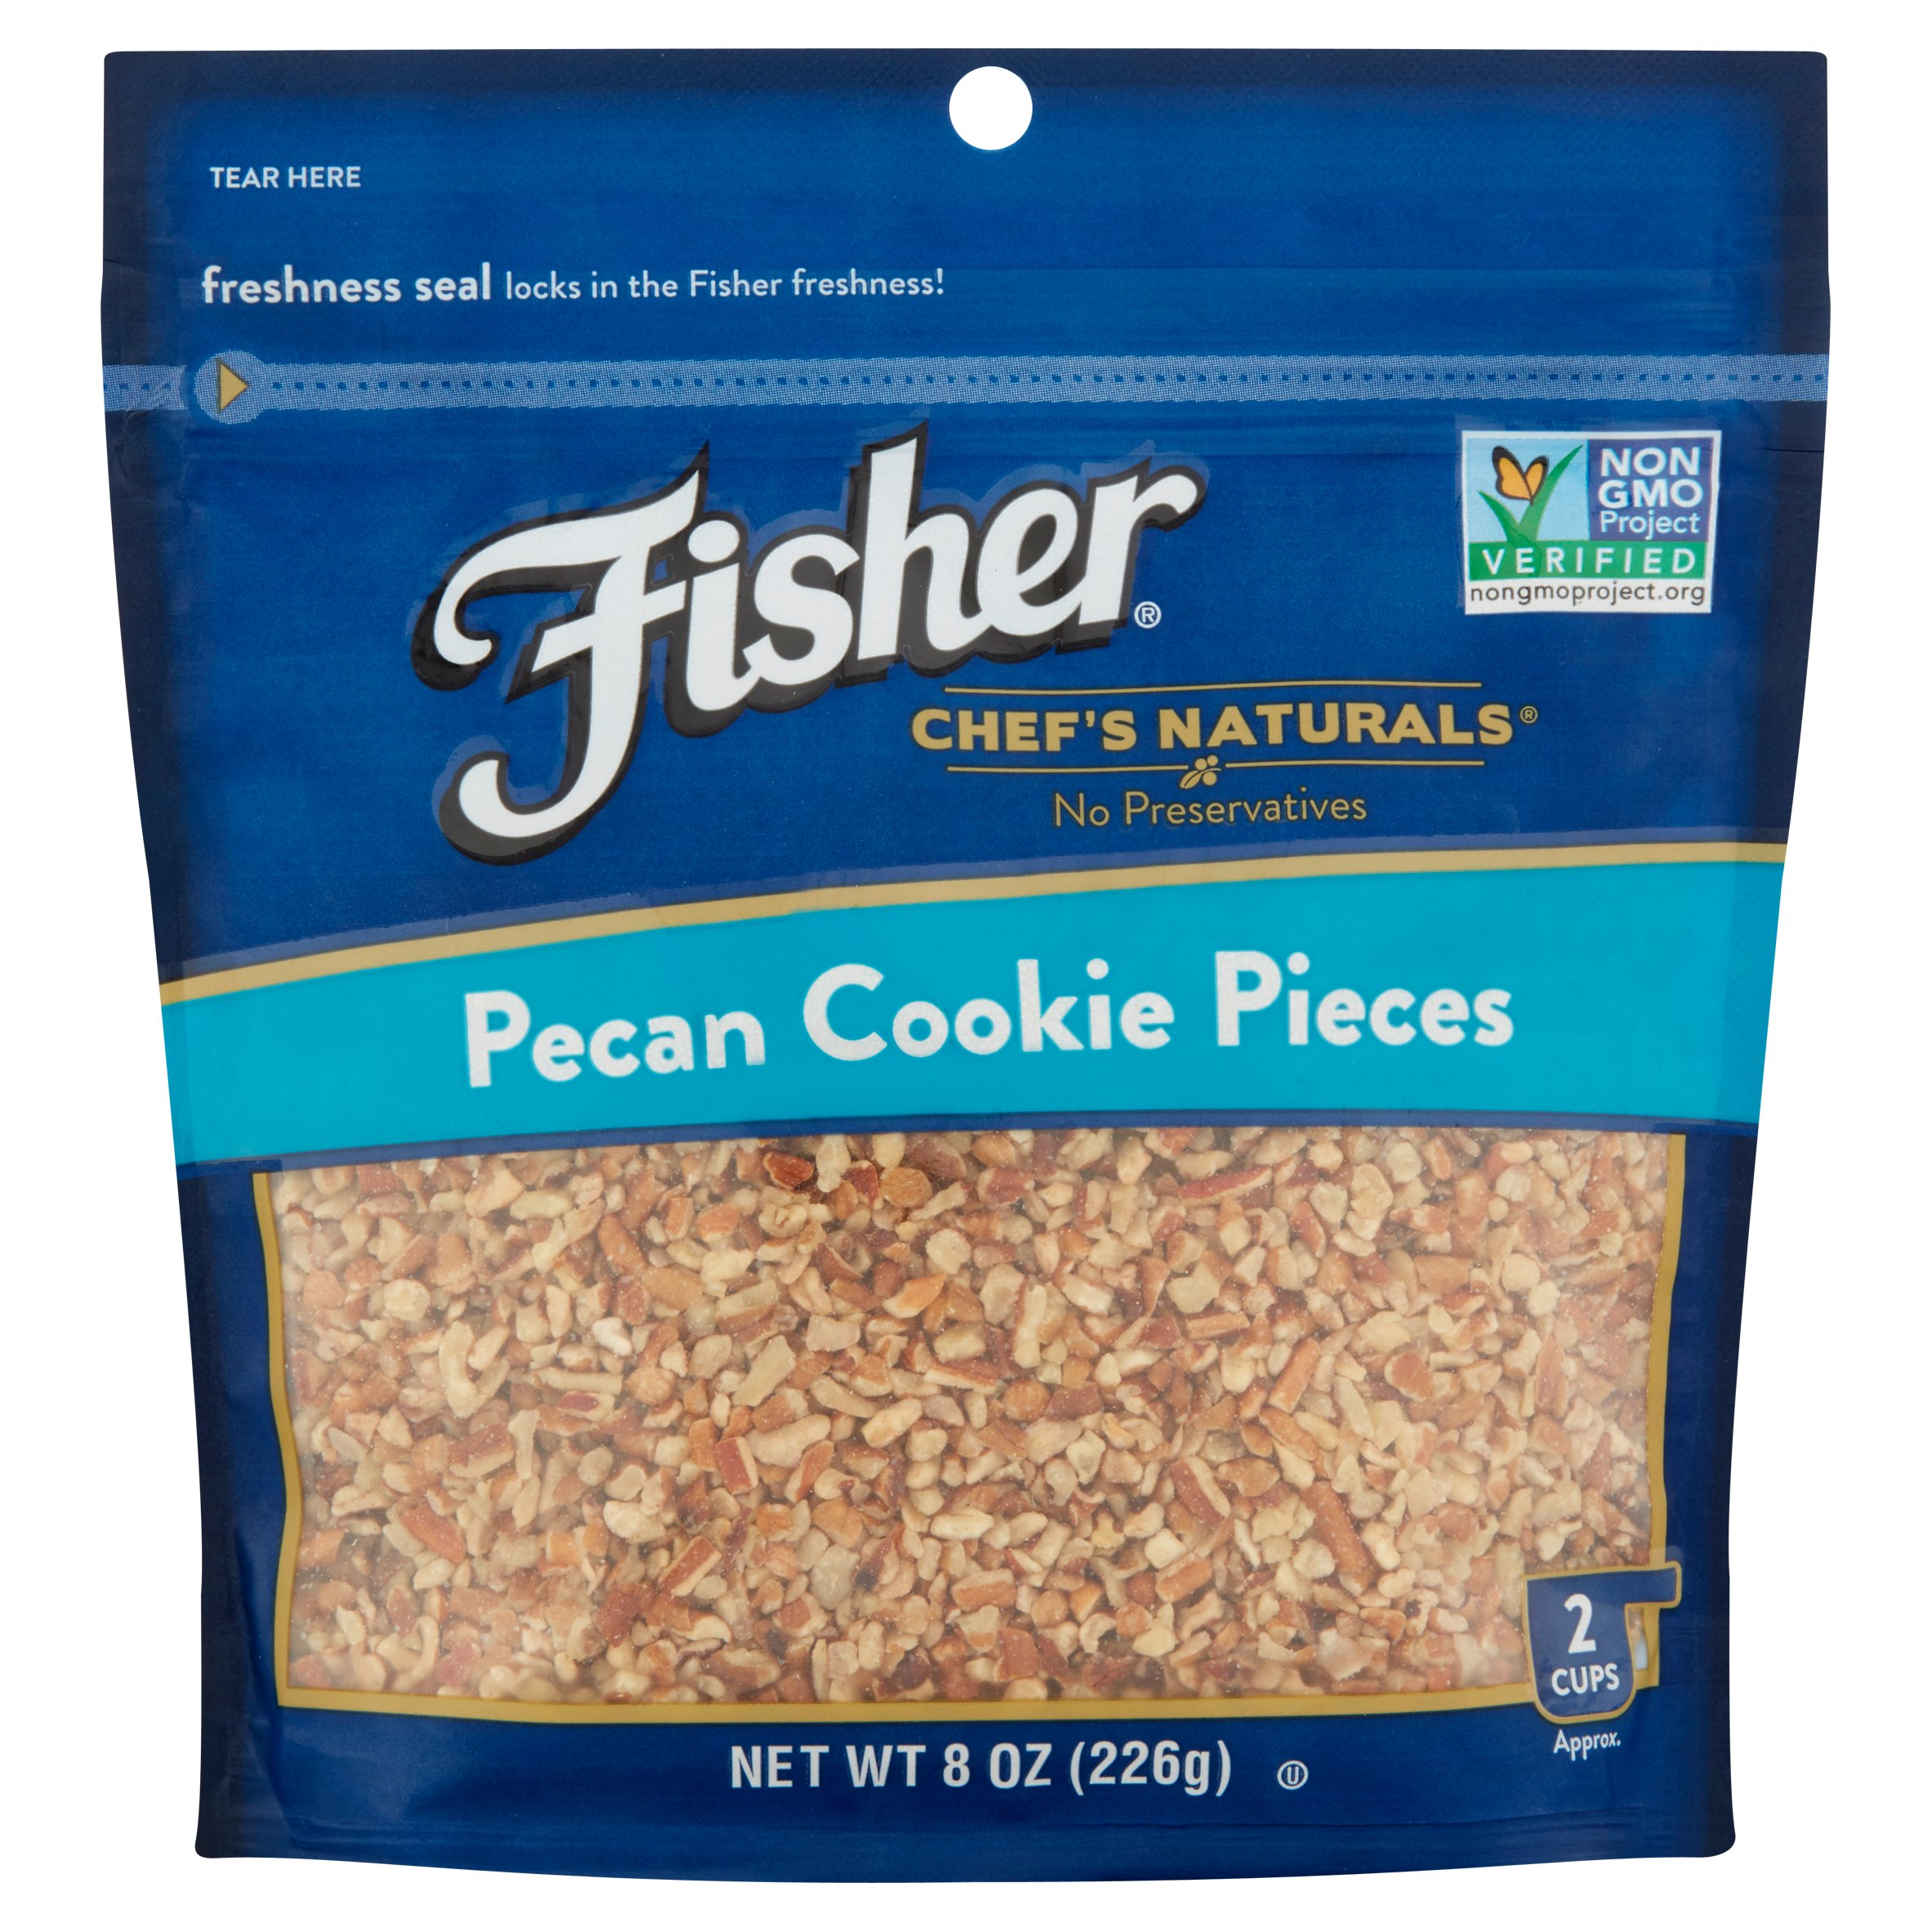 Fisher Chef's Naturals Pecan Cookie Pieces, 8 oz by Generic